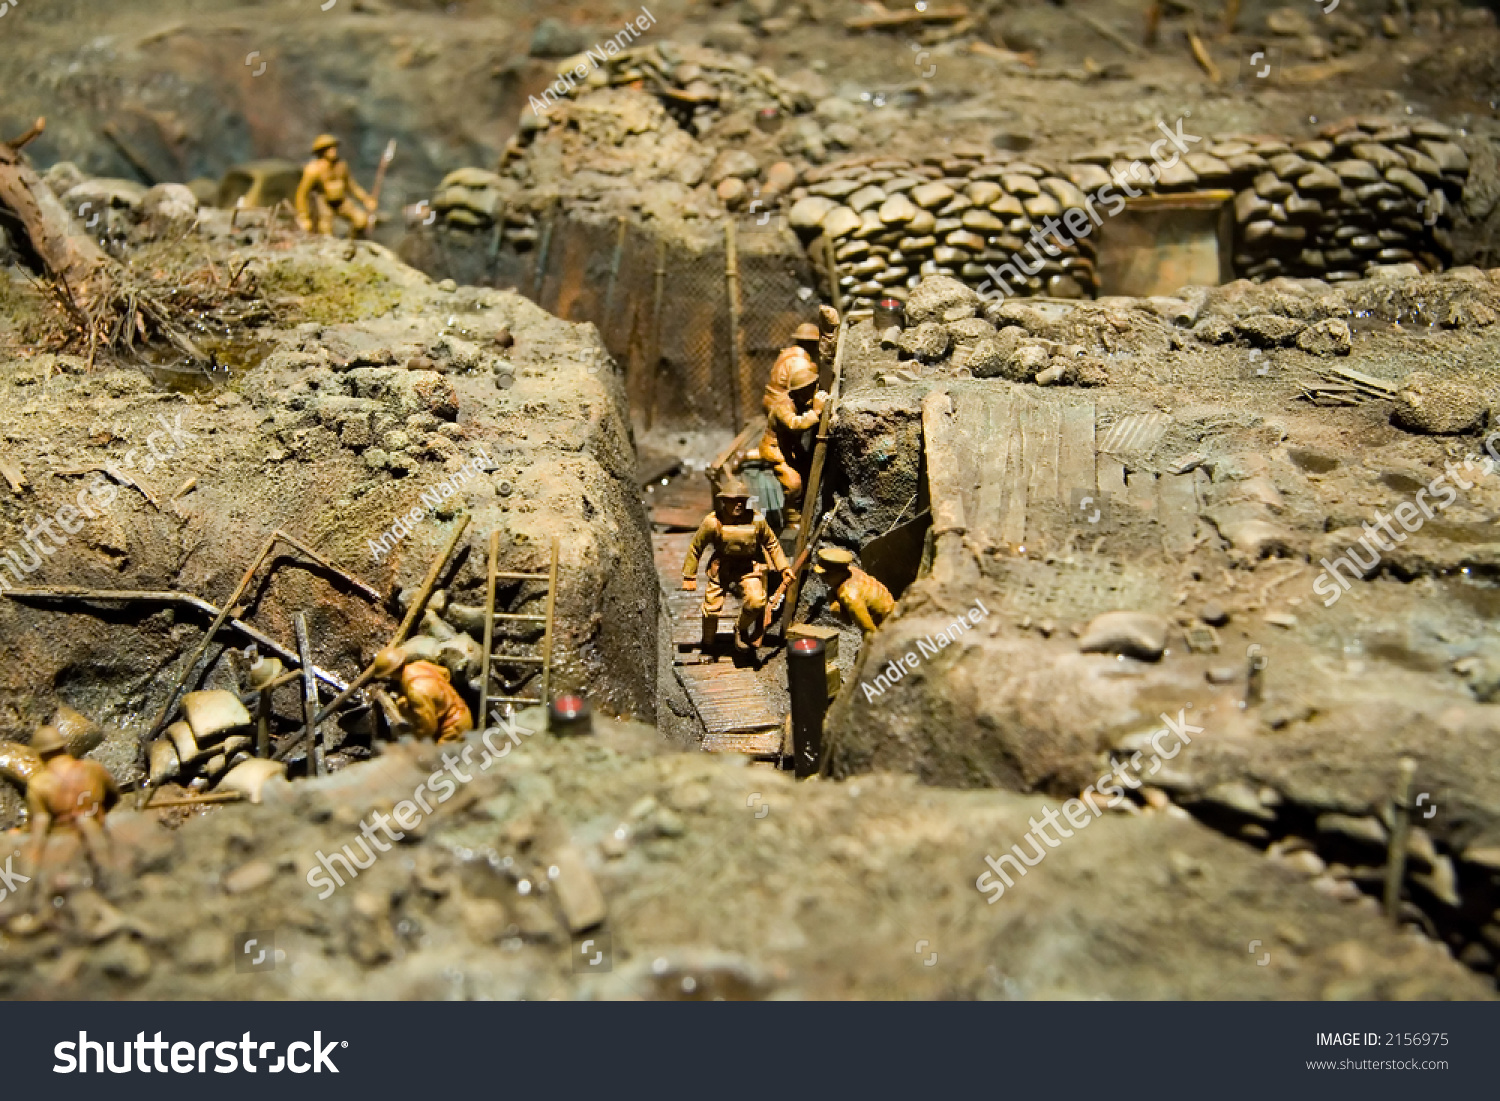 Miniature of world war i trench warfare taken at the war museum of